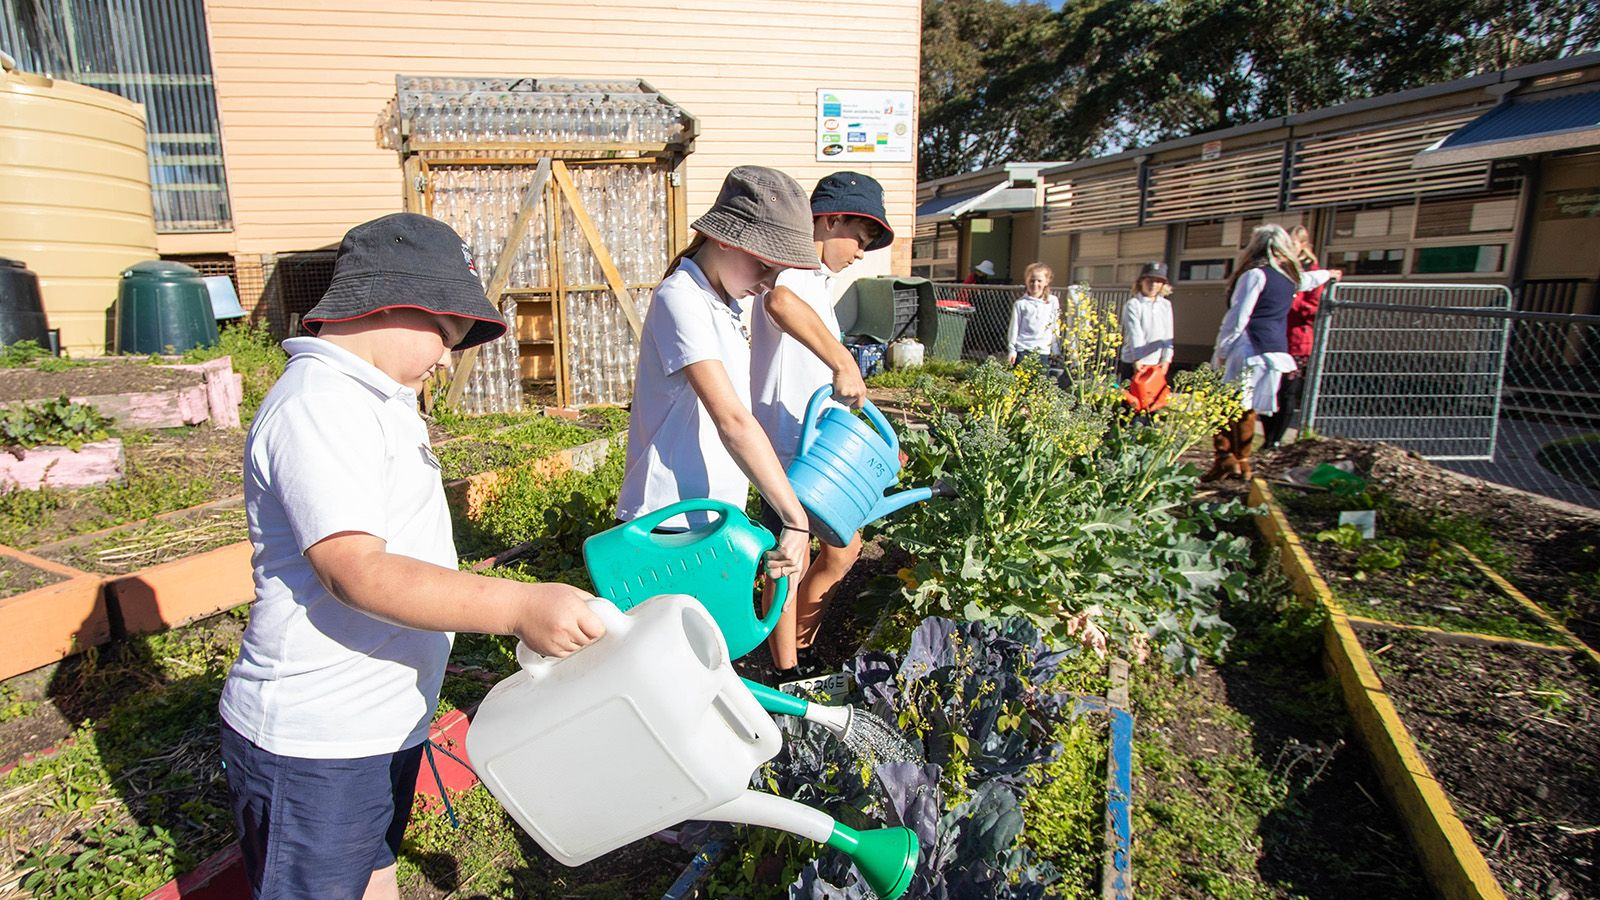 School students using watering cans on a garden bed banner image